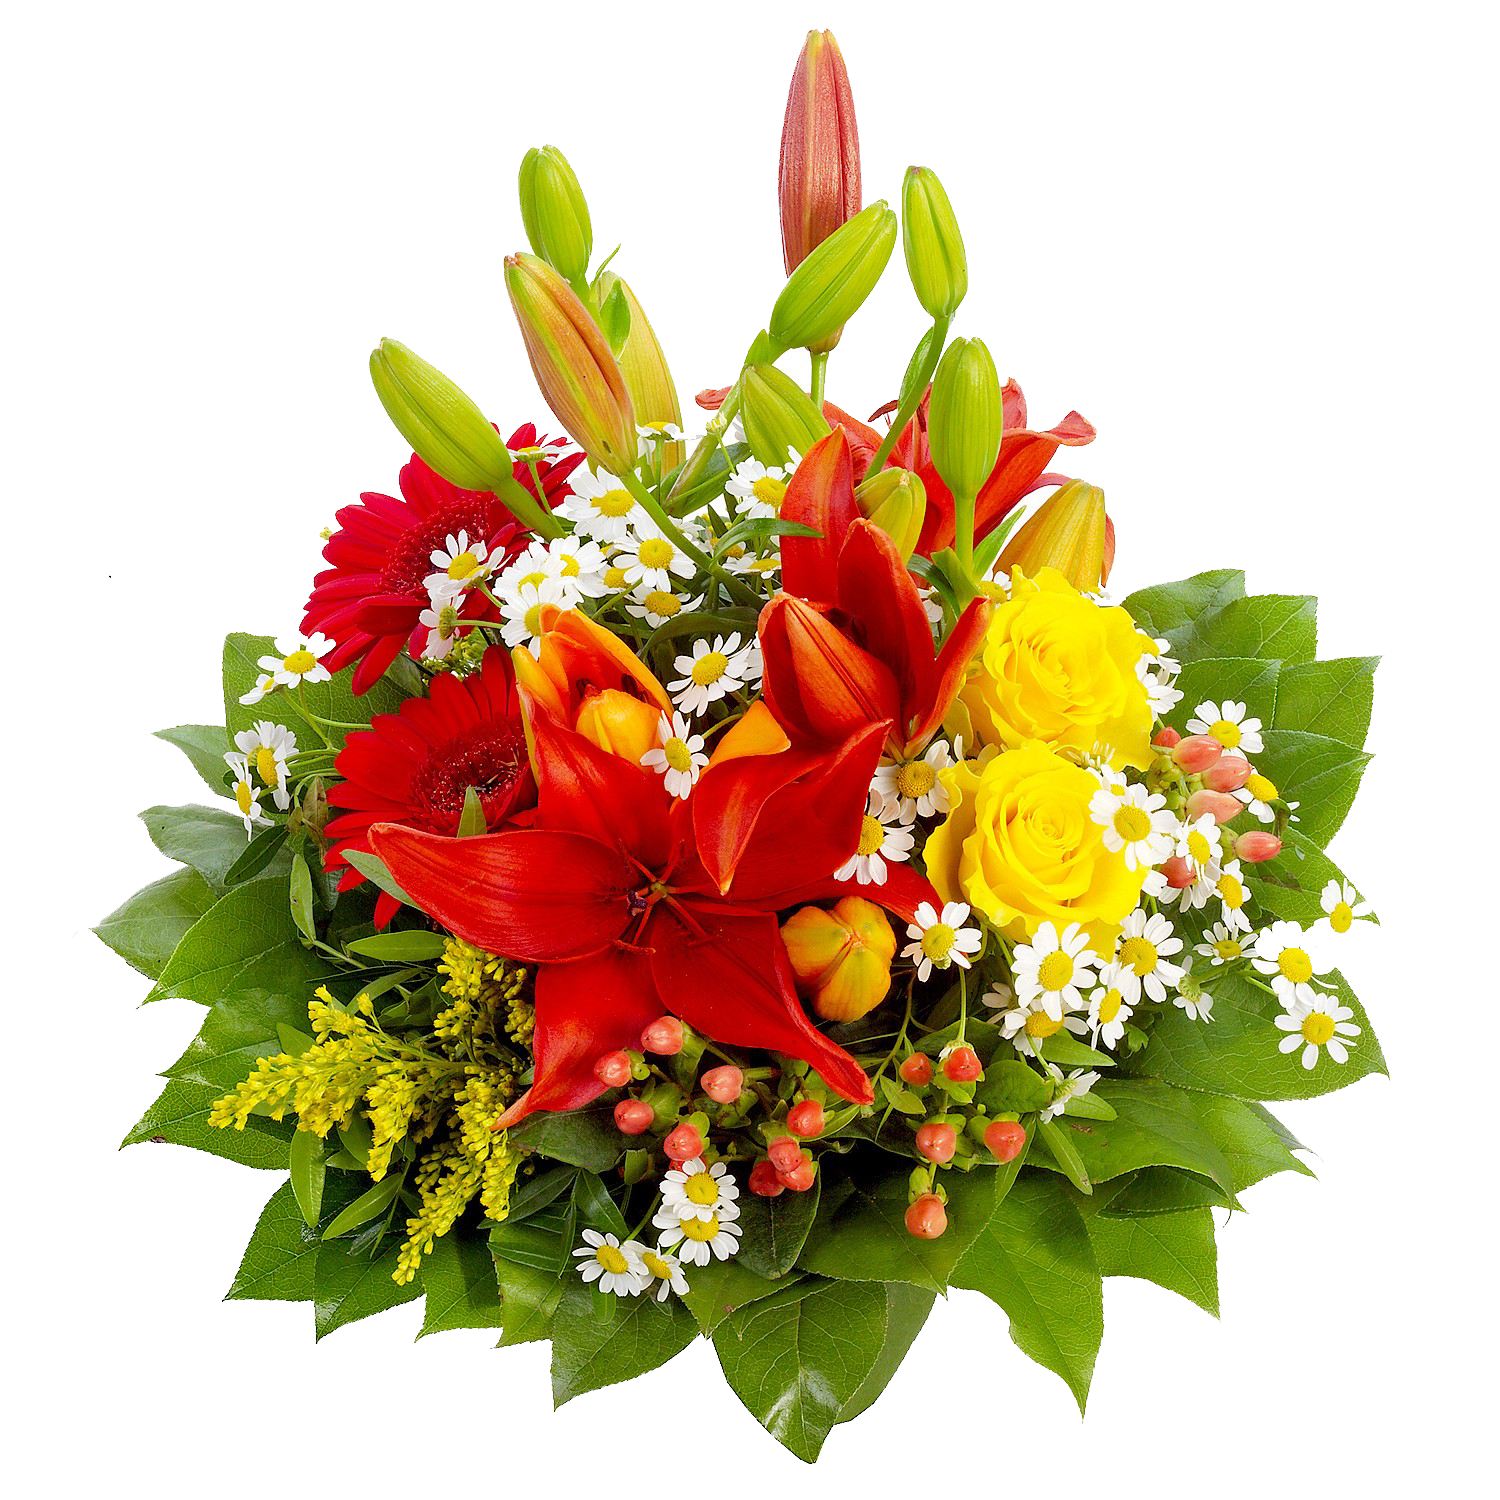 Bouquet of free download. Flowers png images